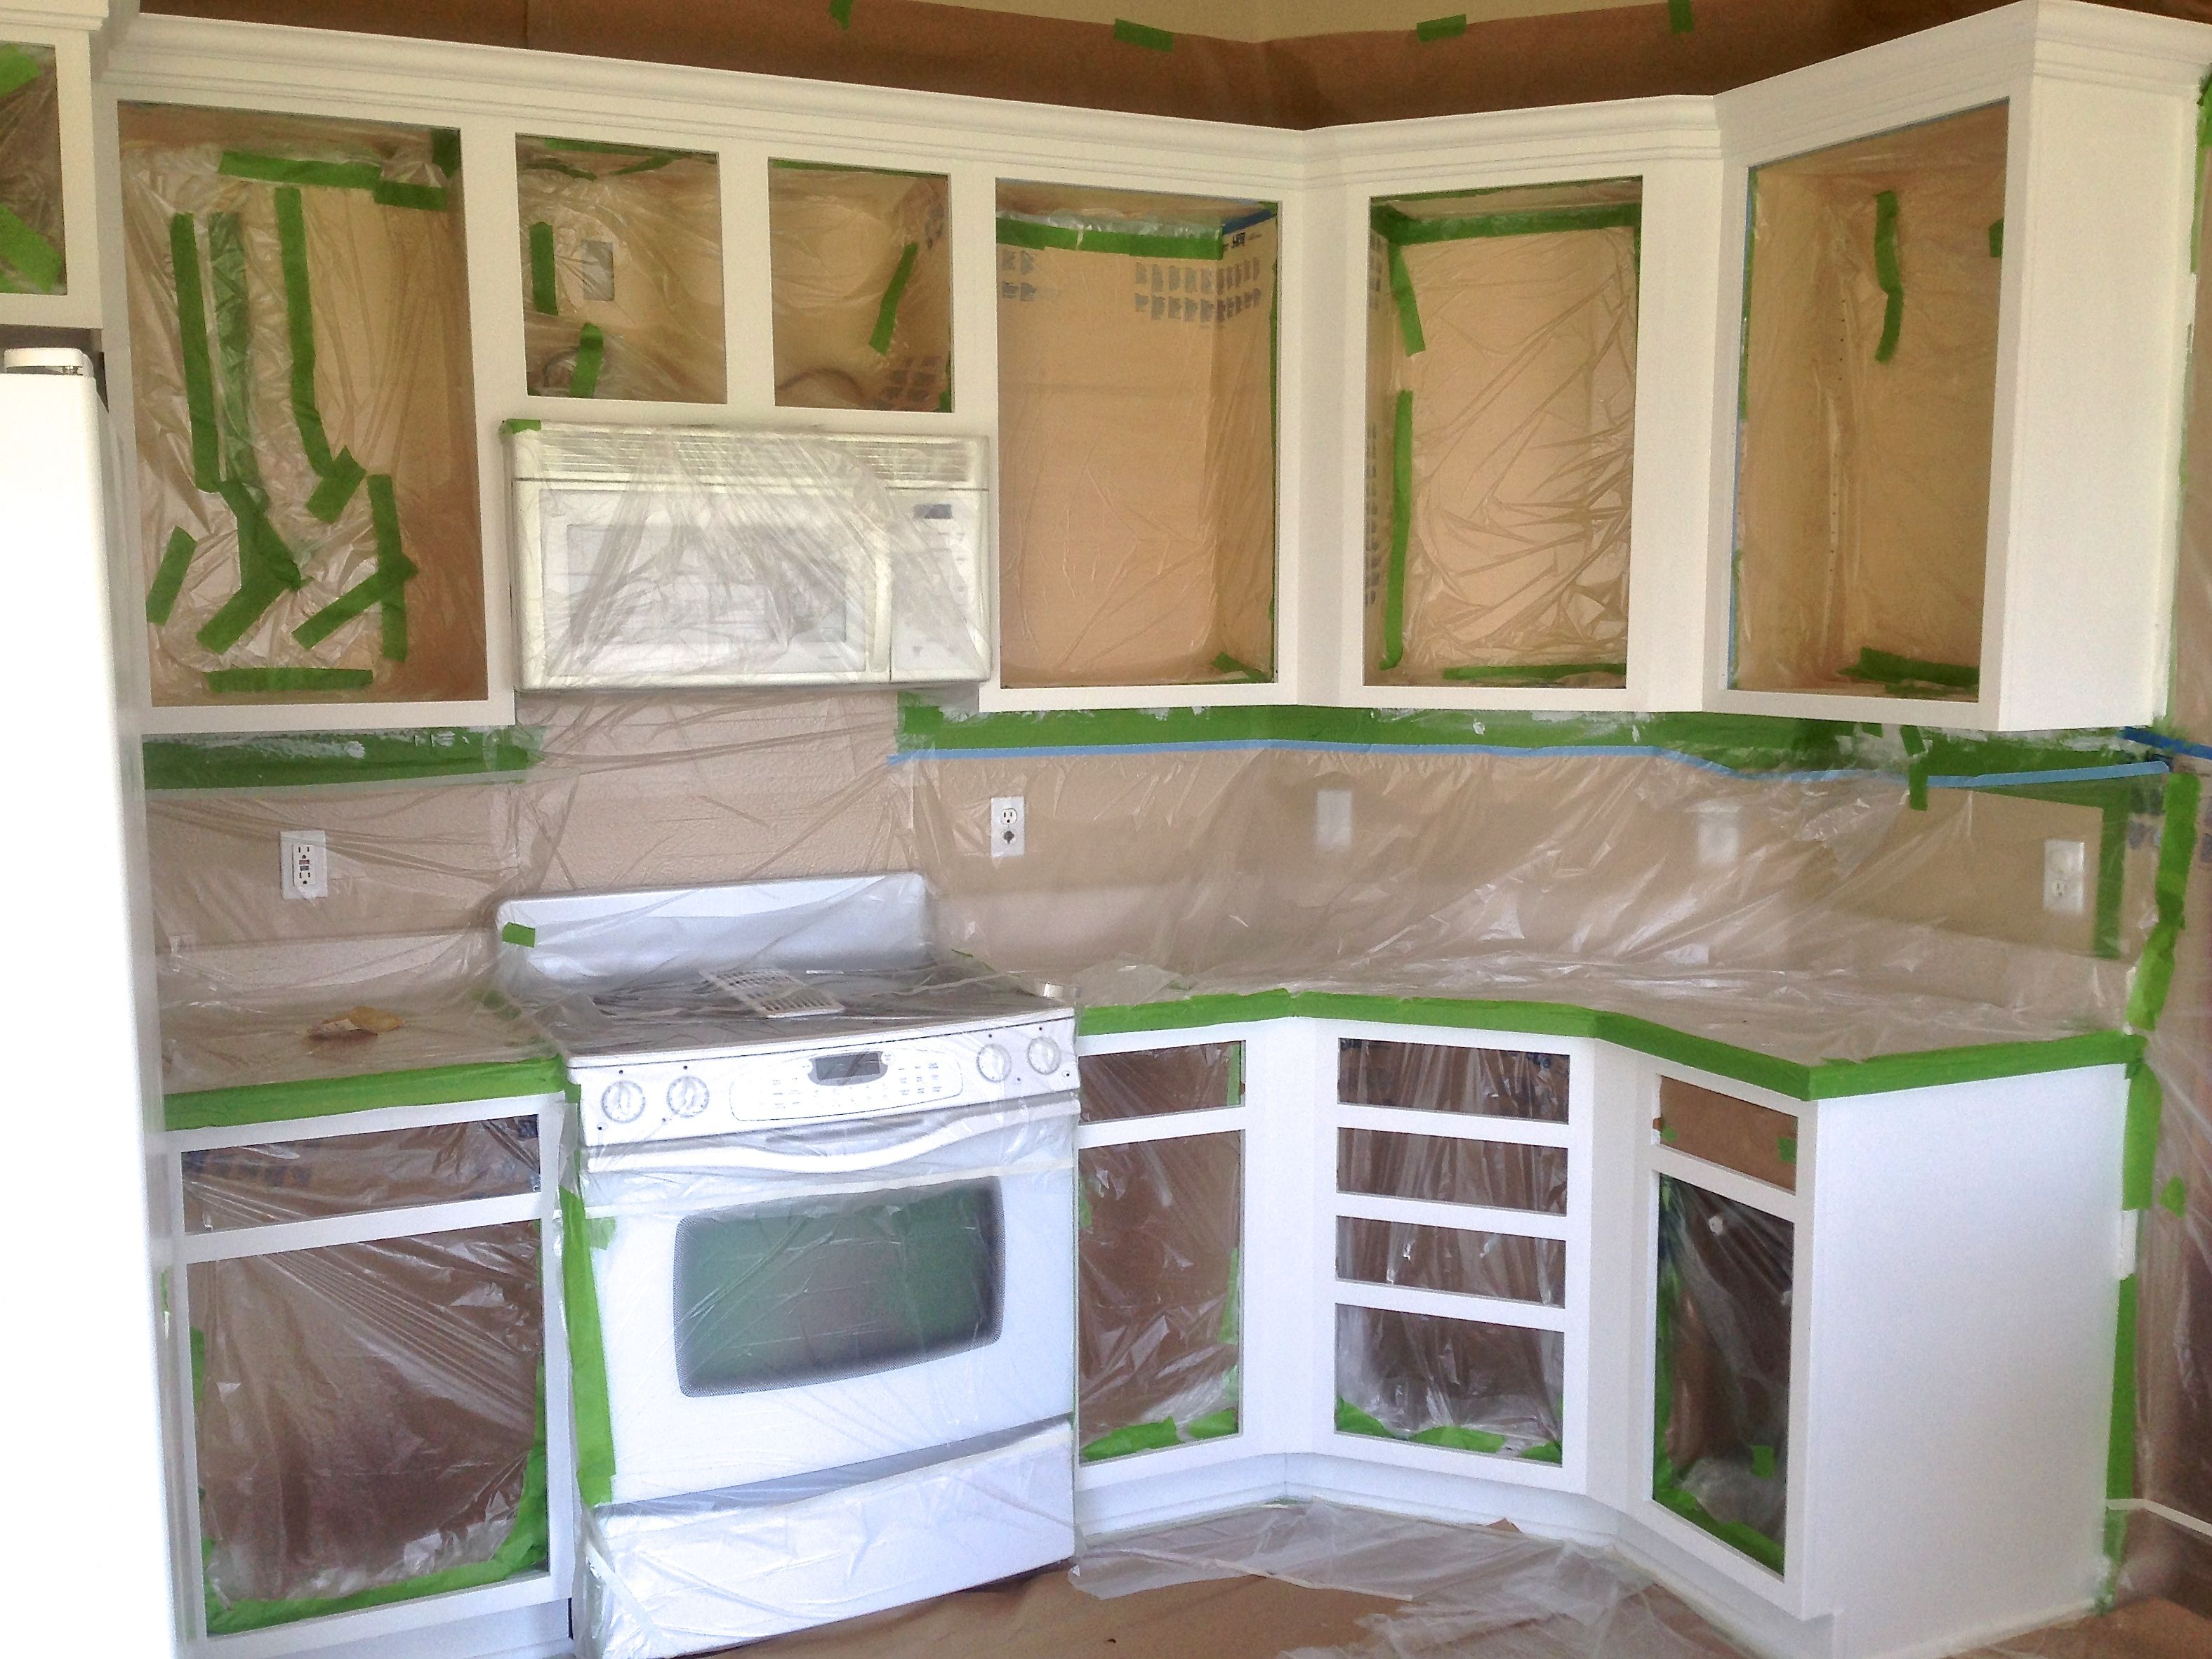 how to paint kitchen cabinets hirerush blog how to paint kitchen cabinets hirerush blog